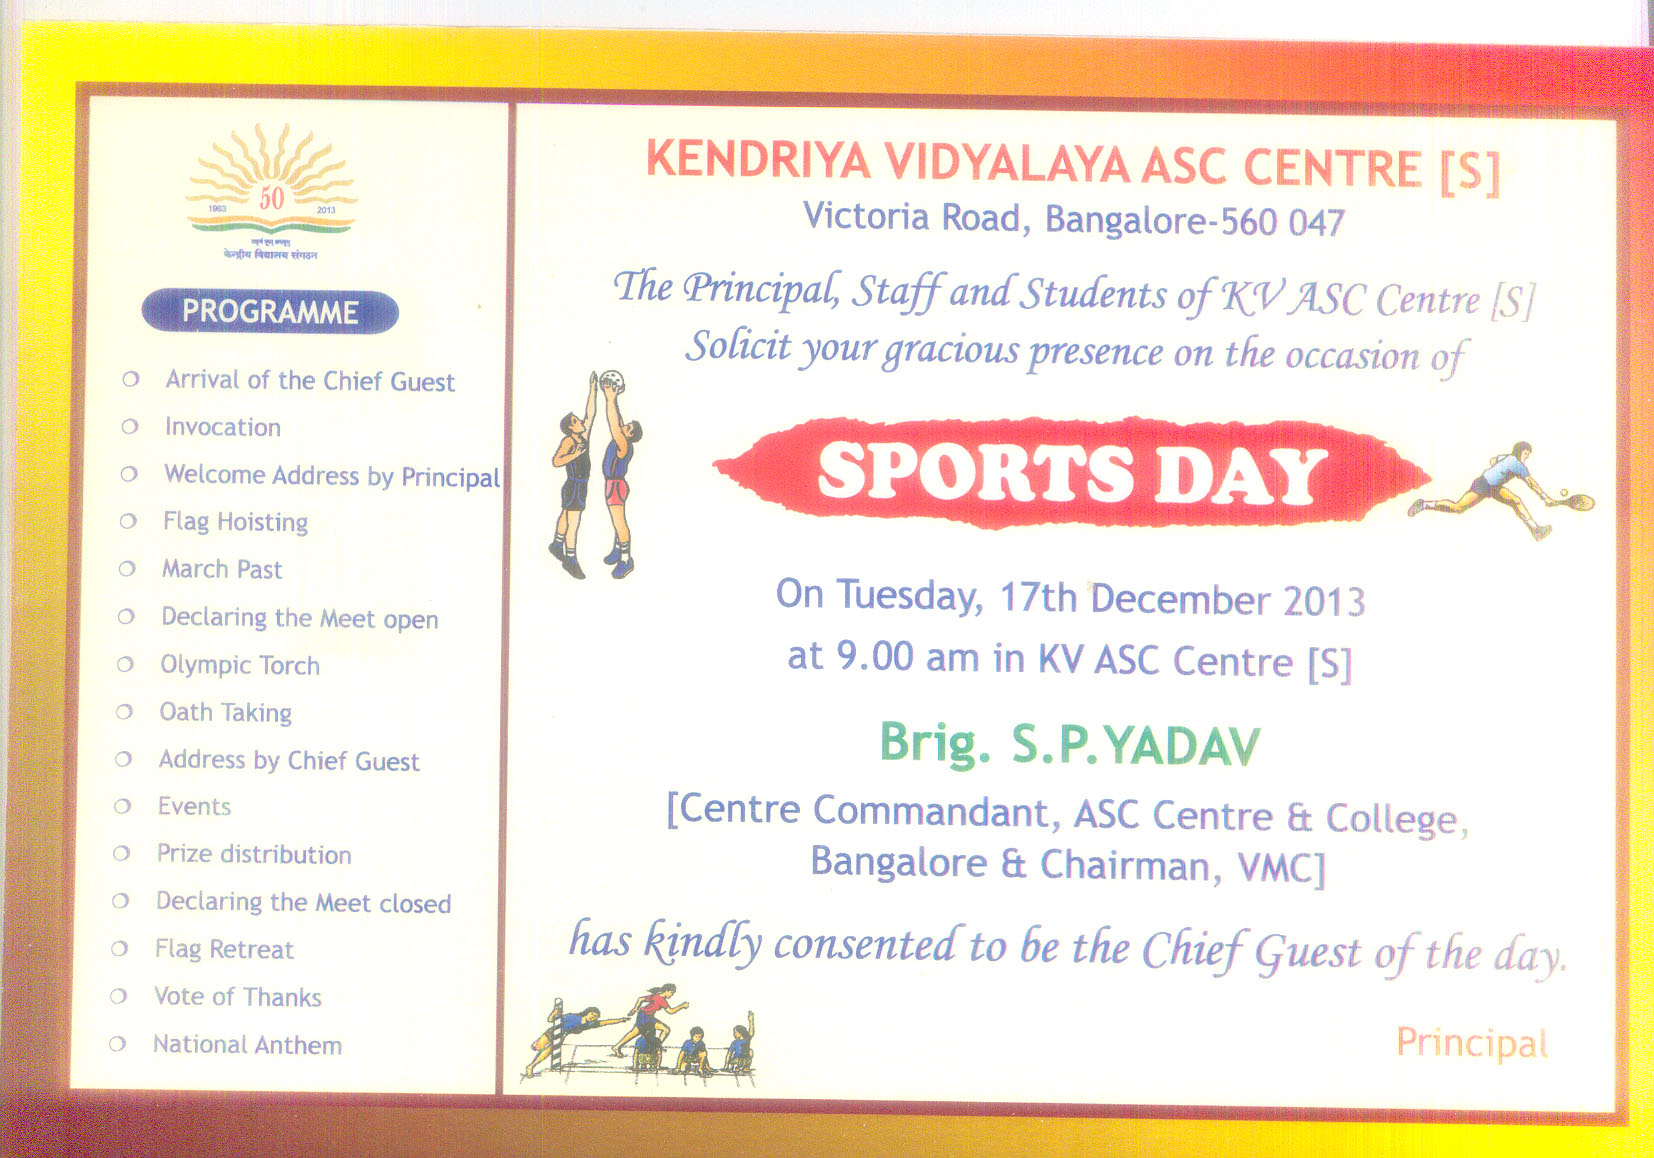 Sports day at kv asc center s bangalore on the 17th of dec 2013 the principal staff students of kv asc center s bangalore solicit your gracious presence on the occasion of sports day on the 17th of december 2013 stopboris Images